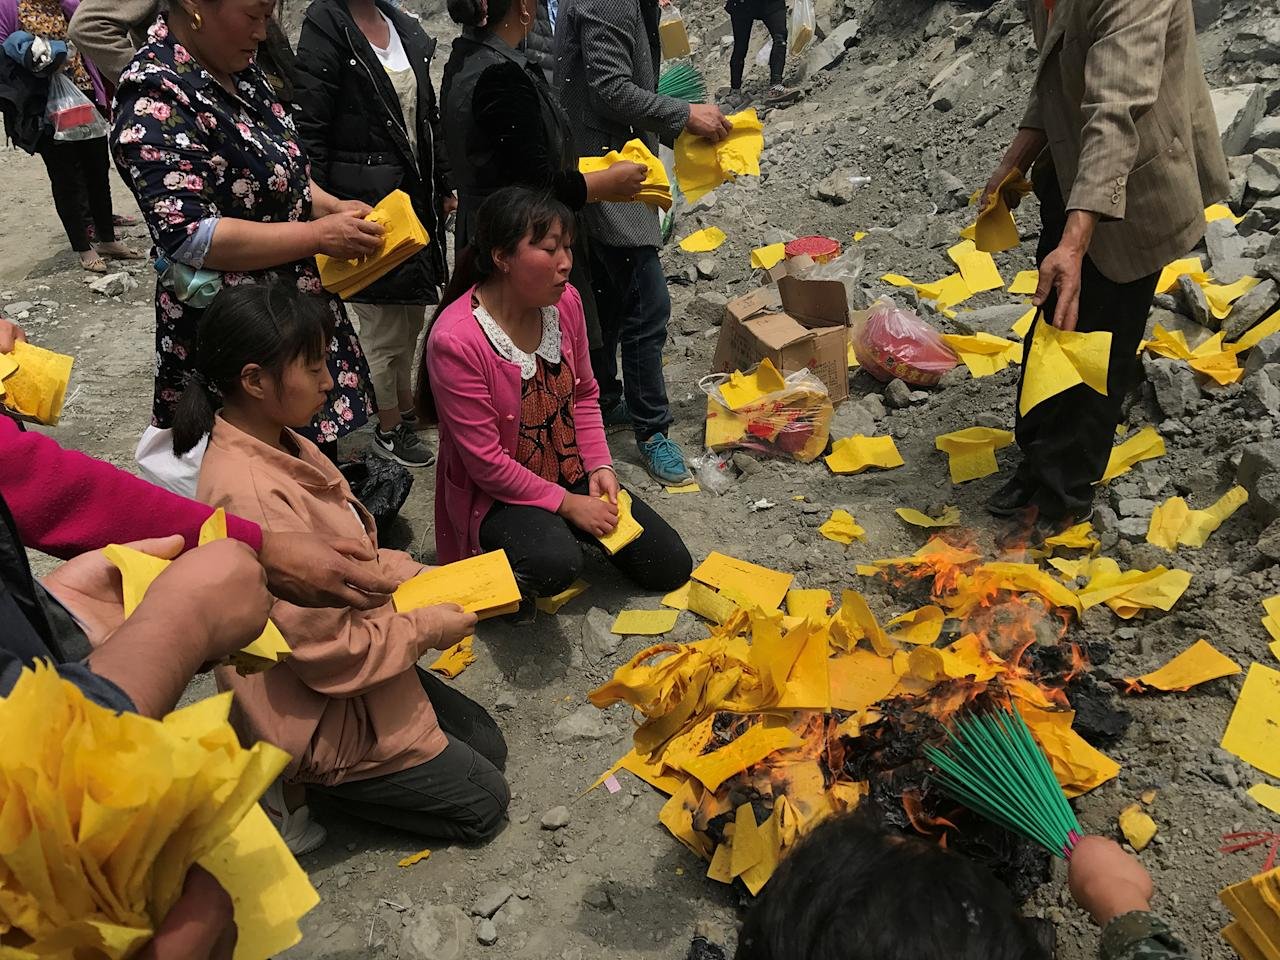 <p>Relatives of victims burn incense and paper money to mourn their dead relatives at the site of a landslide in the village of Xinmo, Mao County, Sichuan Province, China, June 26, 2017. (Photo: Aly Song/Reuters) </p>